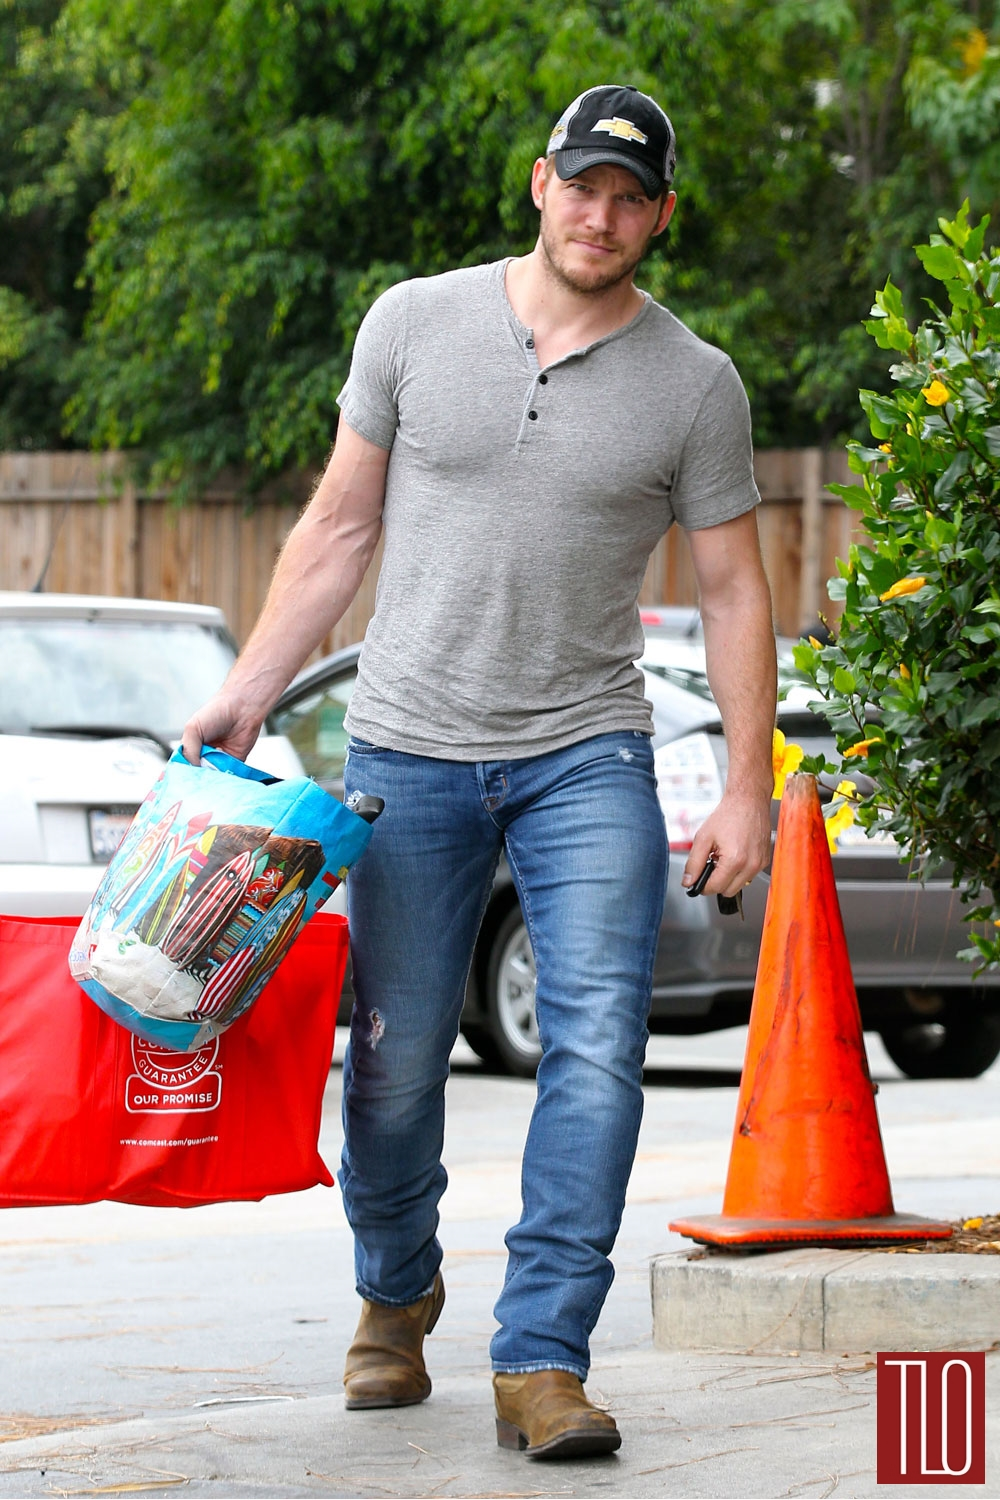 Chris-Pratt-GOTS-BFGTJ-Tom-Lorenzo-Site-TLO (1)